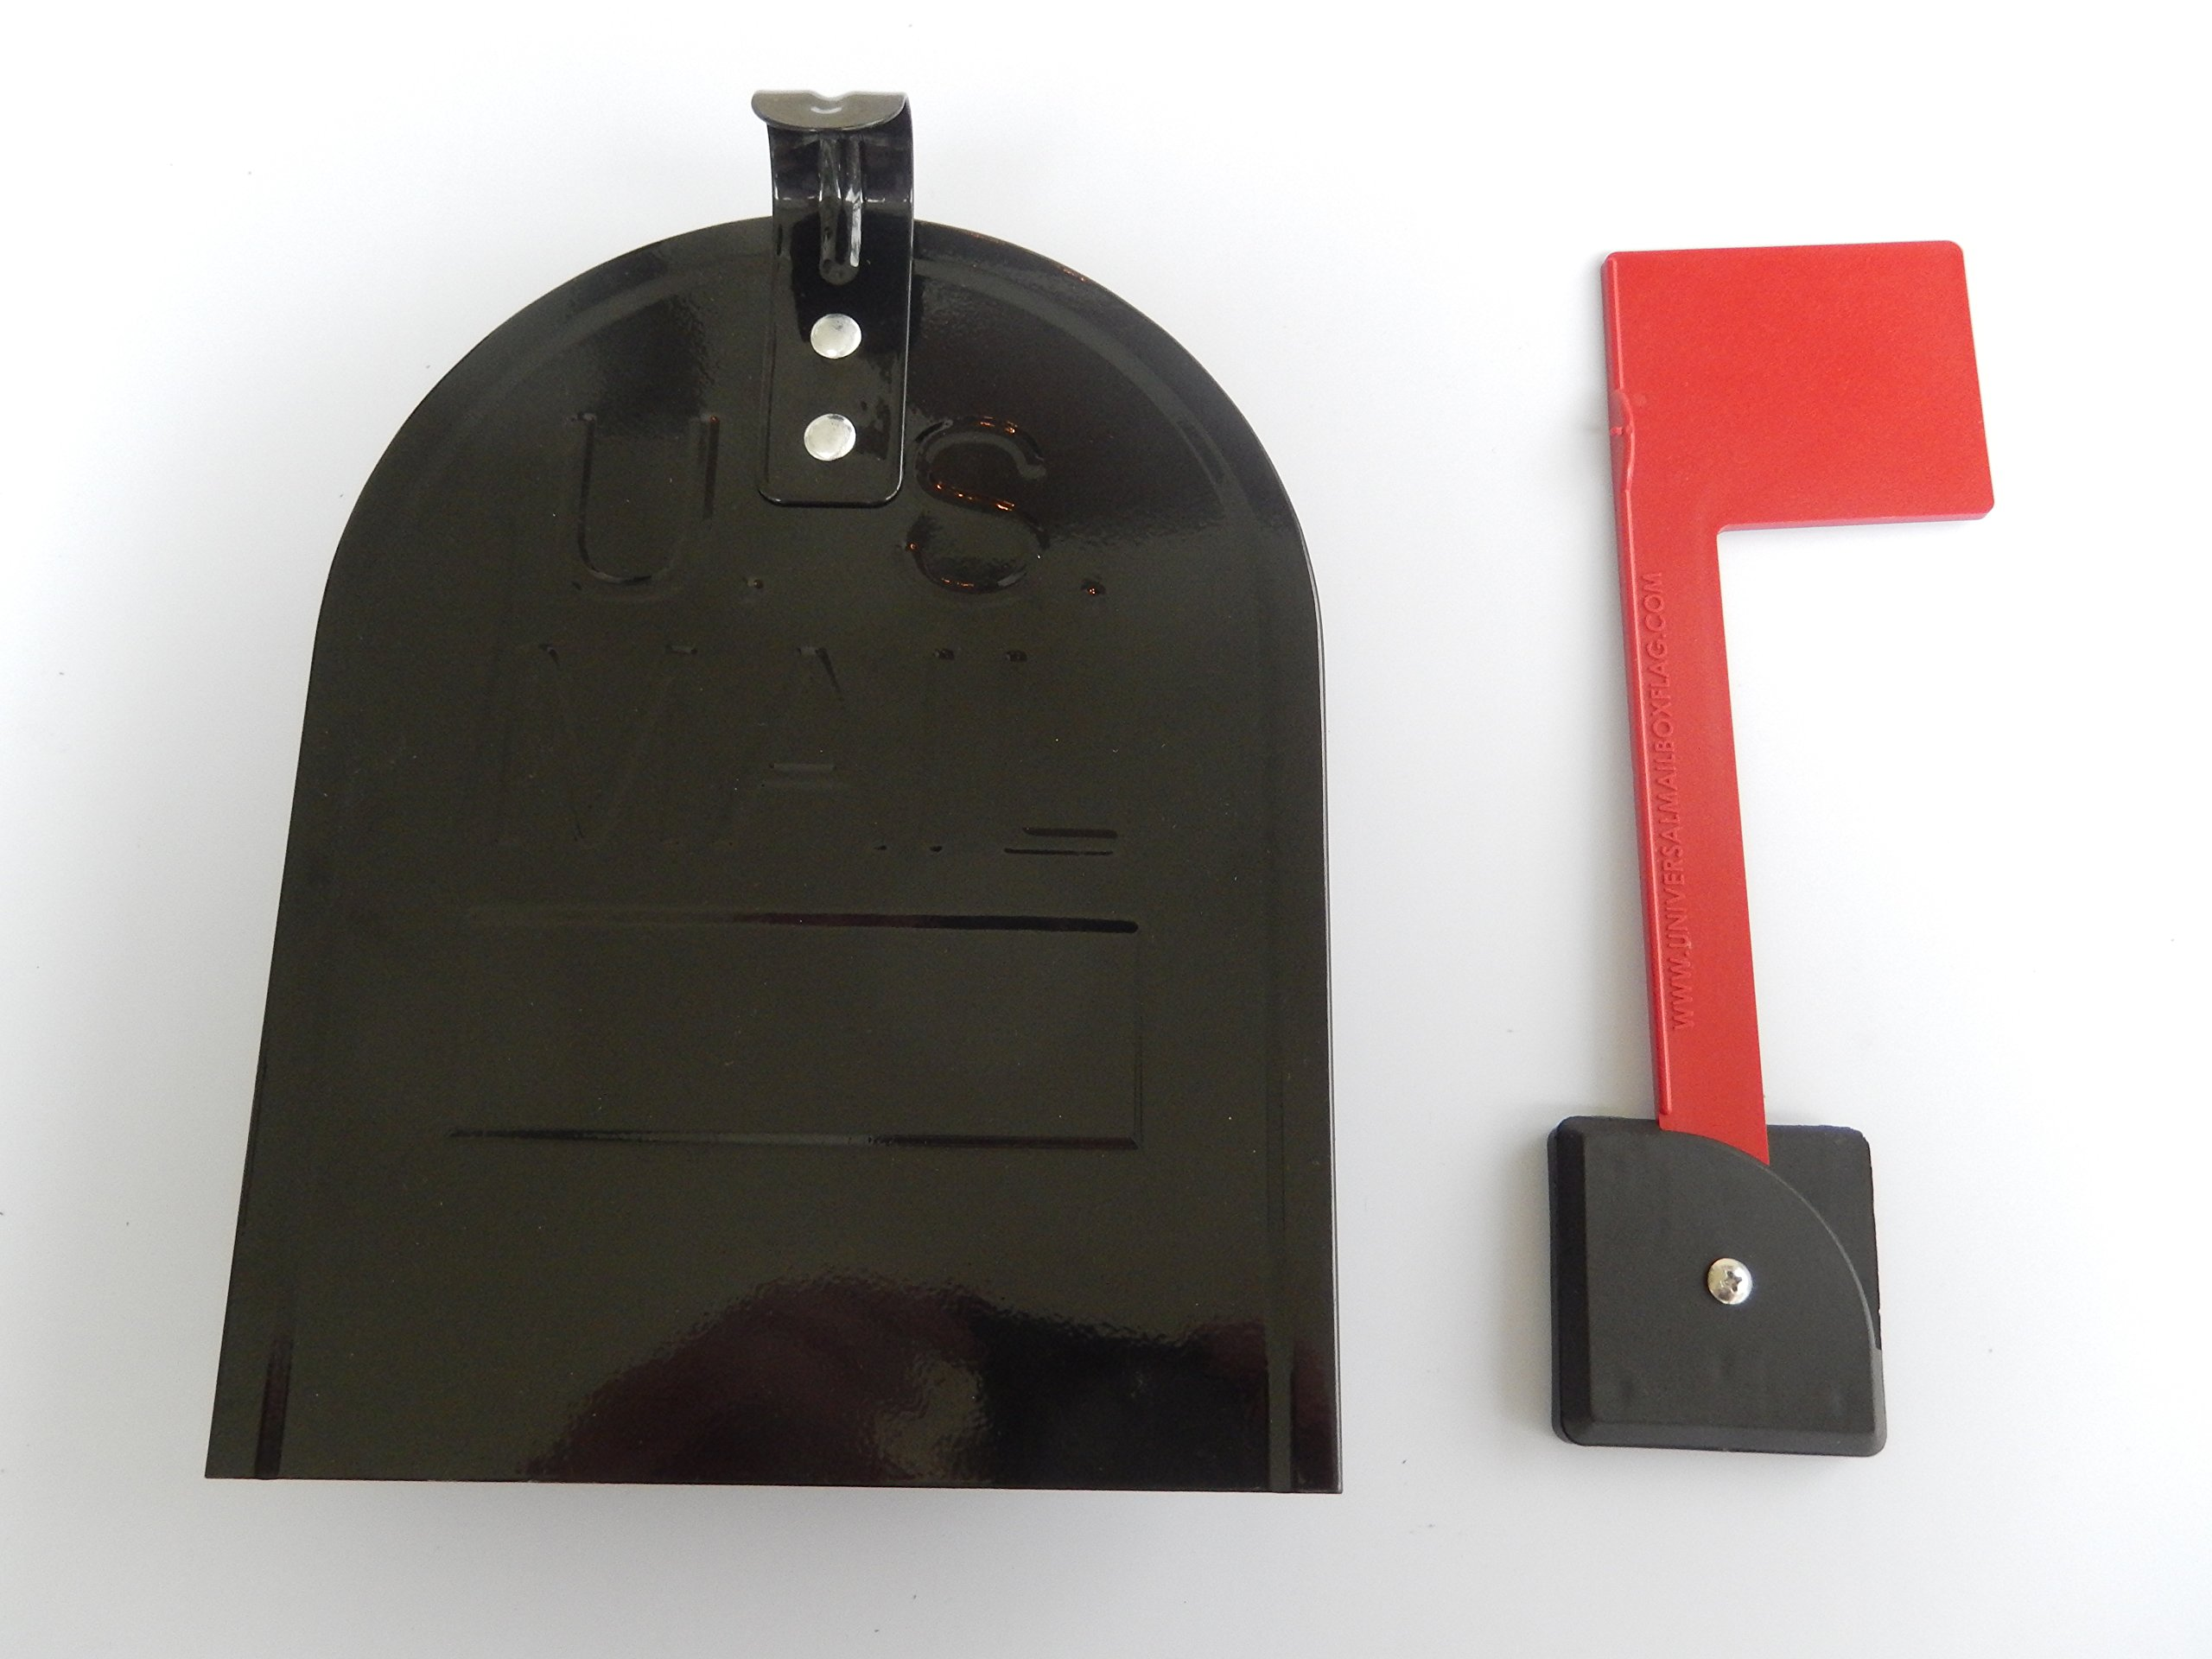 Black Retrofit Snap-In Mailbox Door 6 1/4'' (width) x 8'' (height) and Red Universal Mailbox Flag